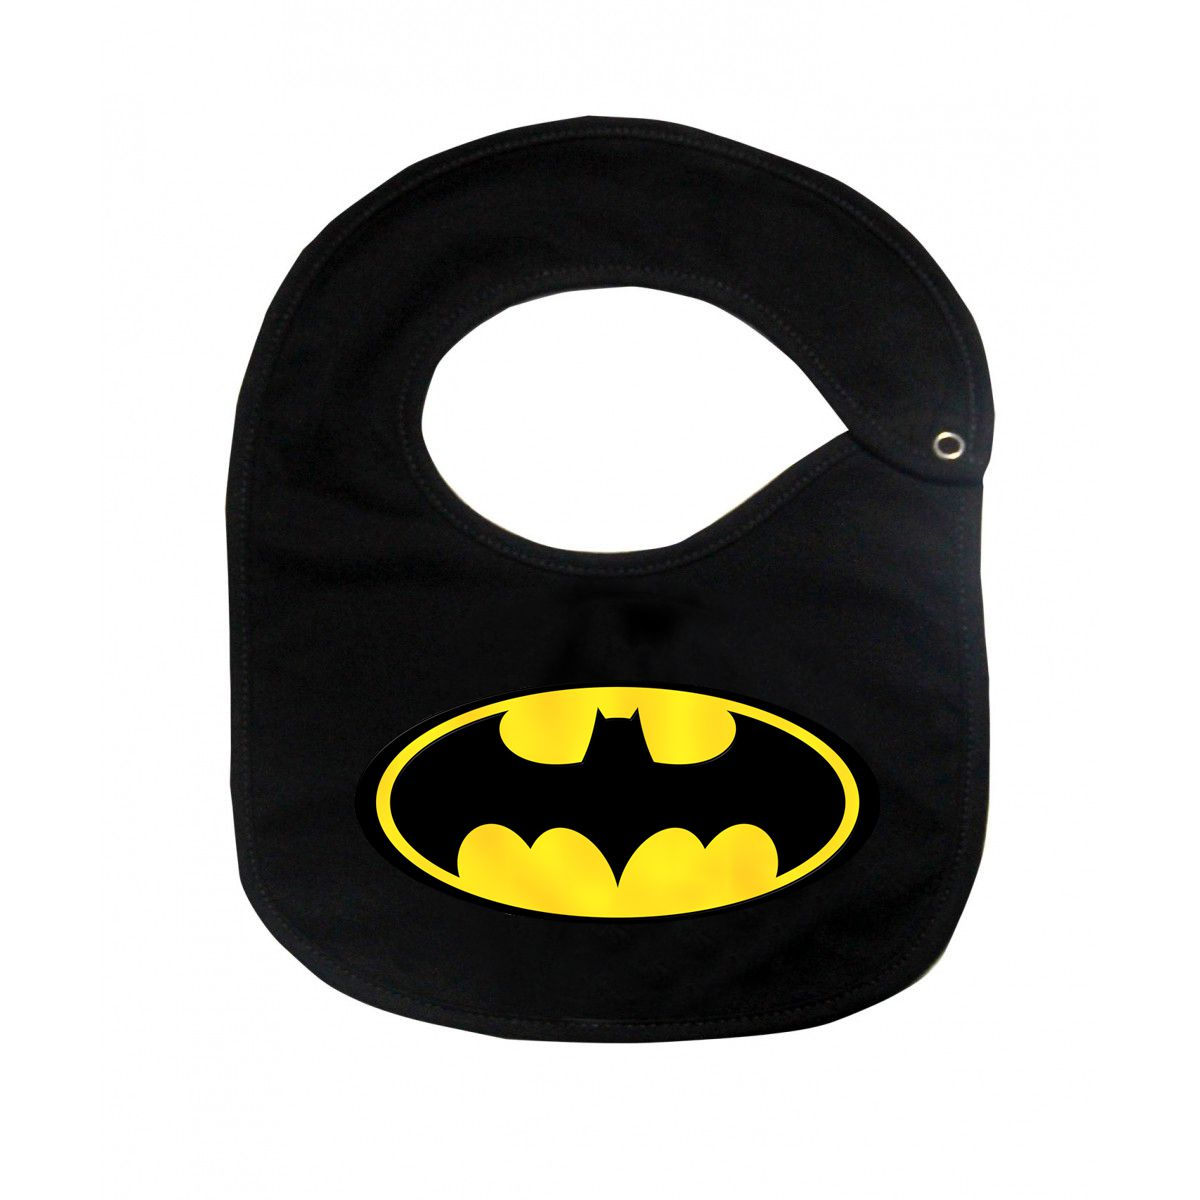 Babador super herois   - Batman  - Black  - Baby Monster S/A